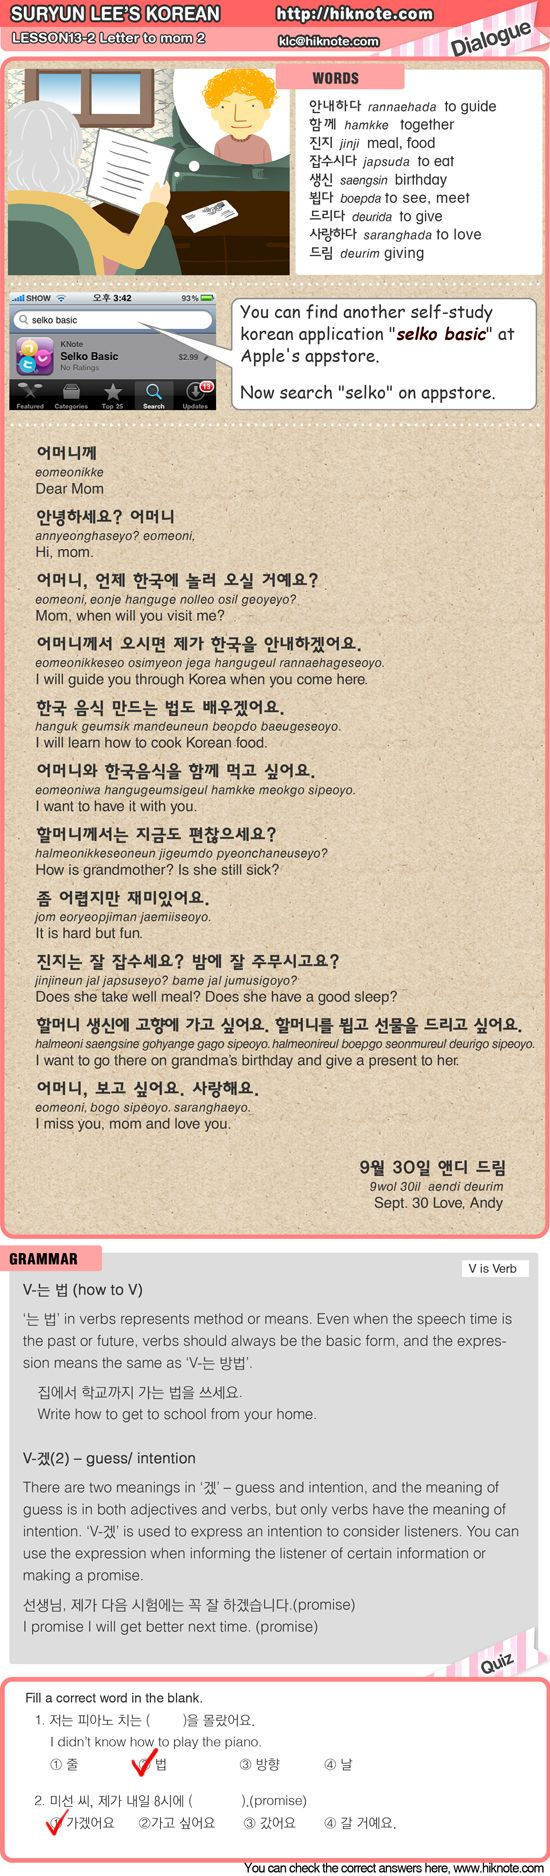 Suryun LeeS Korean Letter To Mom   Kind Of Weird